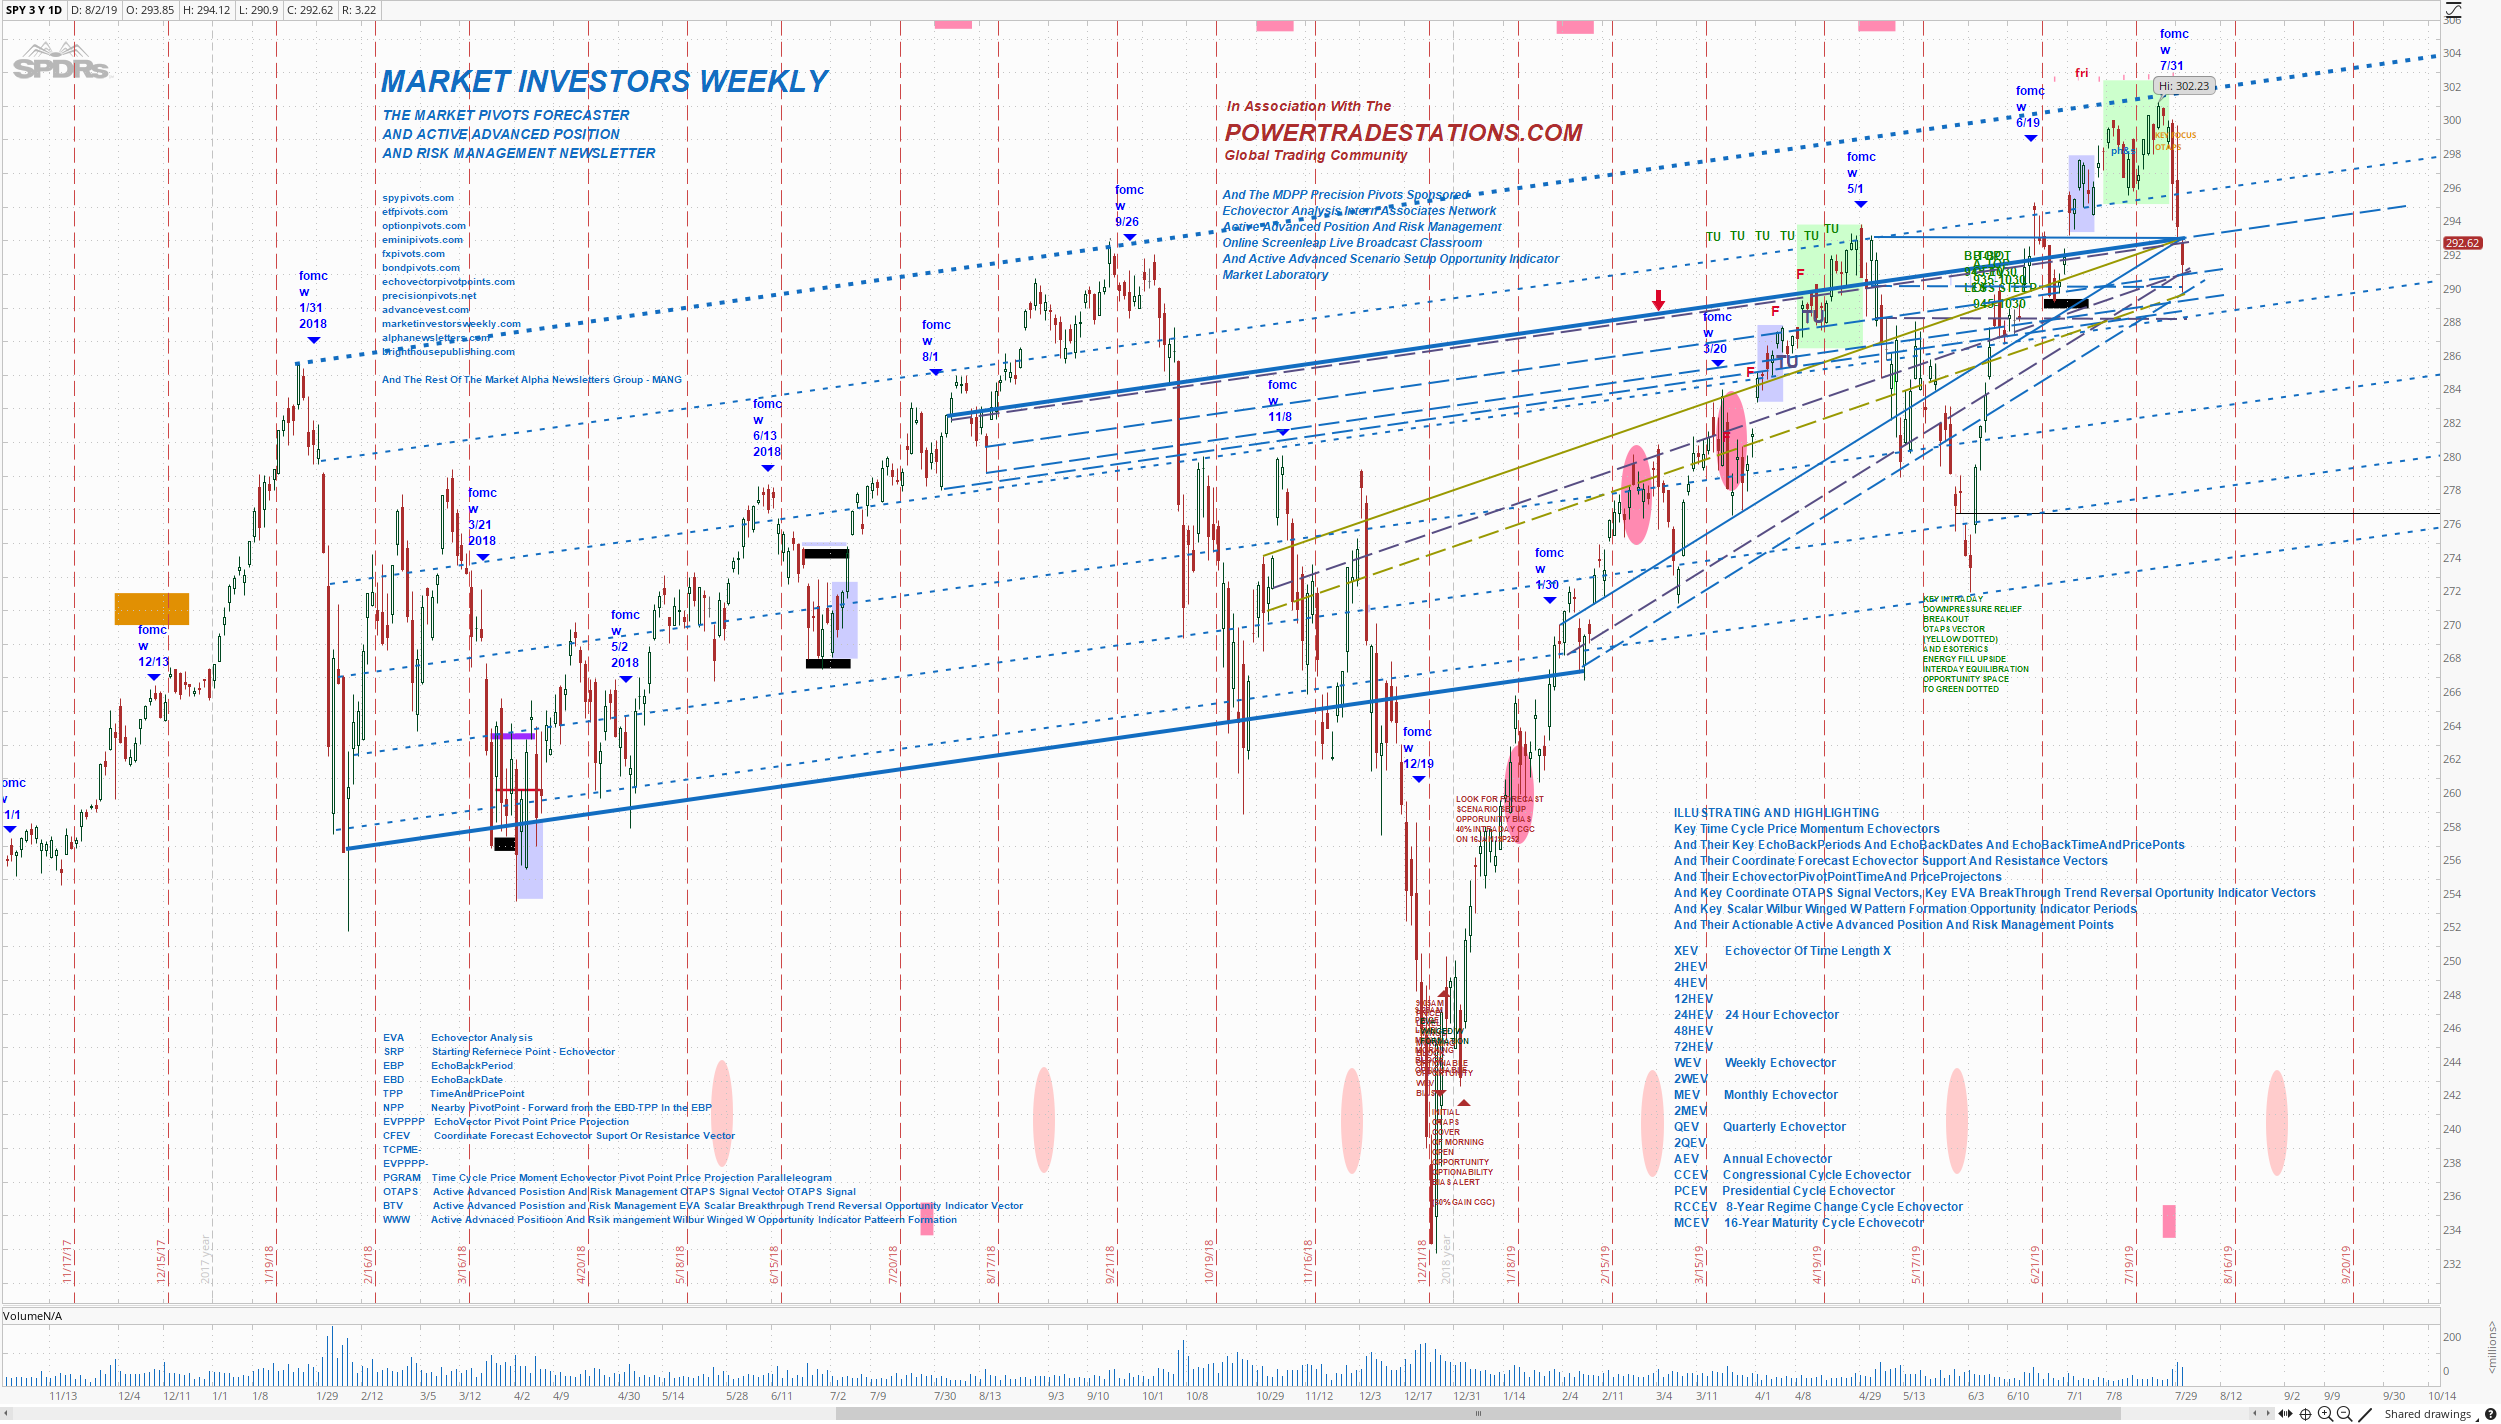 THE MARKET PIVOTS FORECASTER By EchoVectorVEST : 08/01/2016 - 09/01/2016